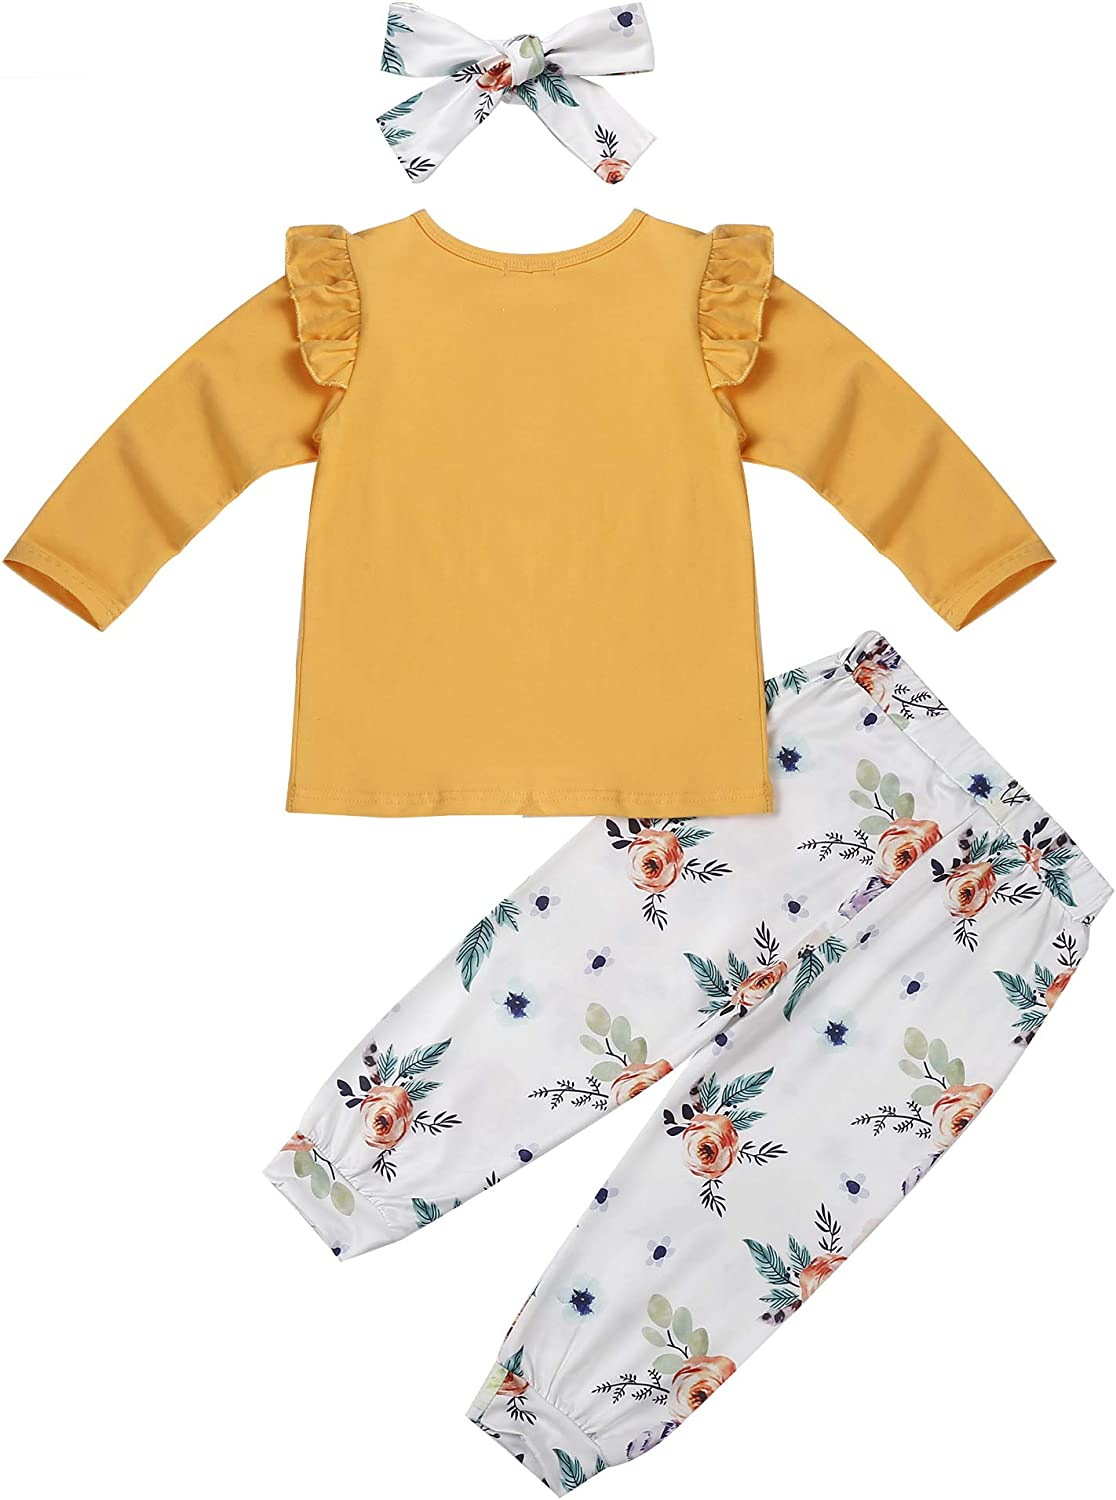 Edjude Newborn Baby Girls Romper Clothes Set Toddler Long Sleeves Bodysuit Floral Legging Pants Birthday Outfits